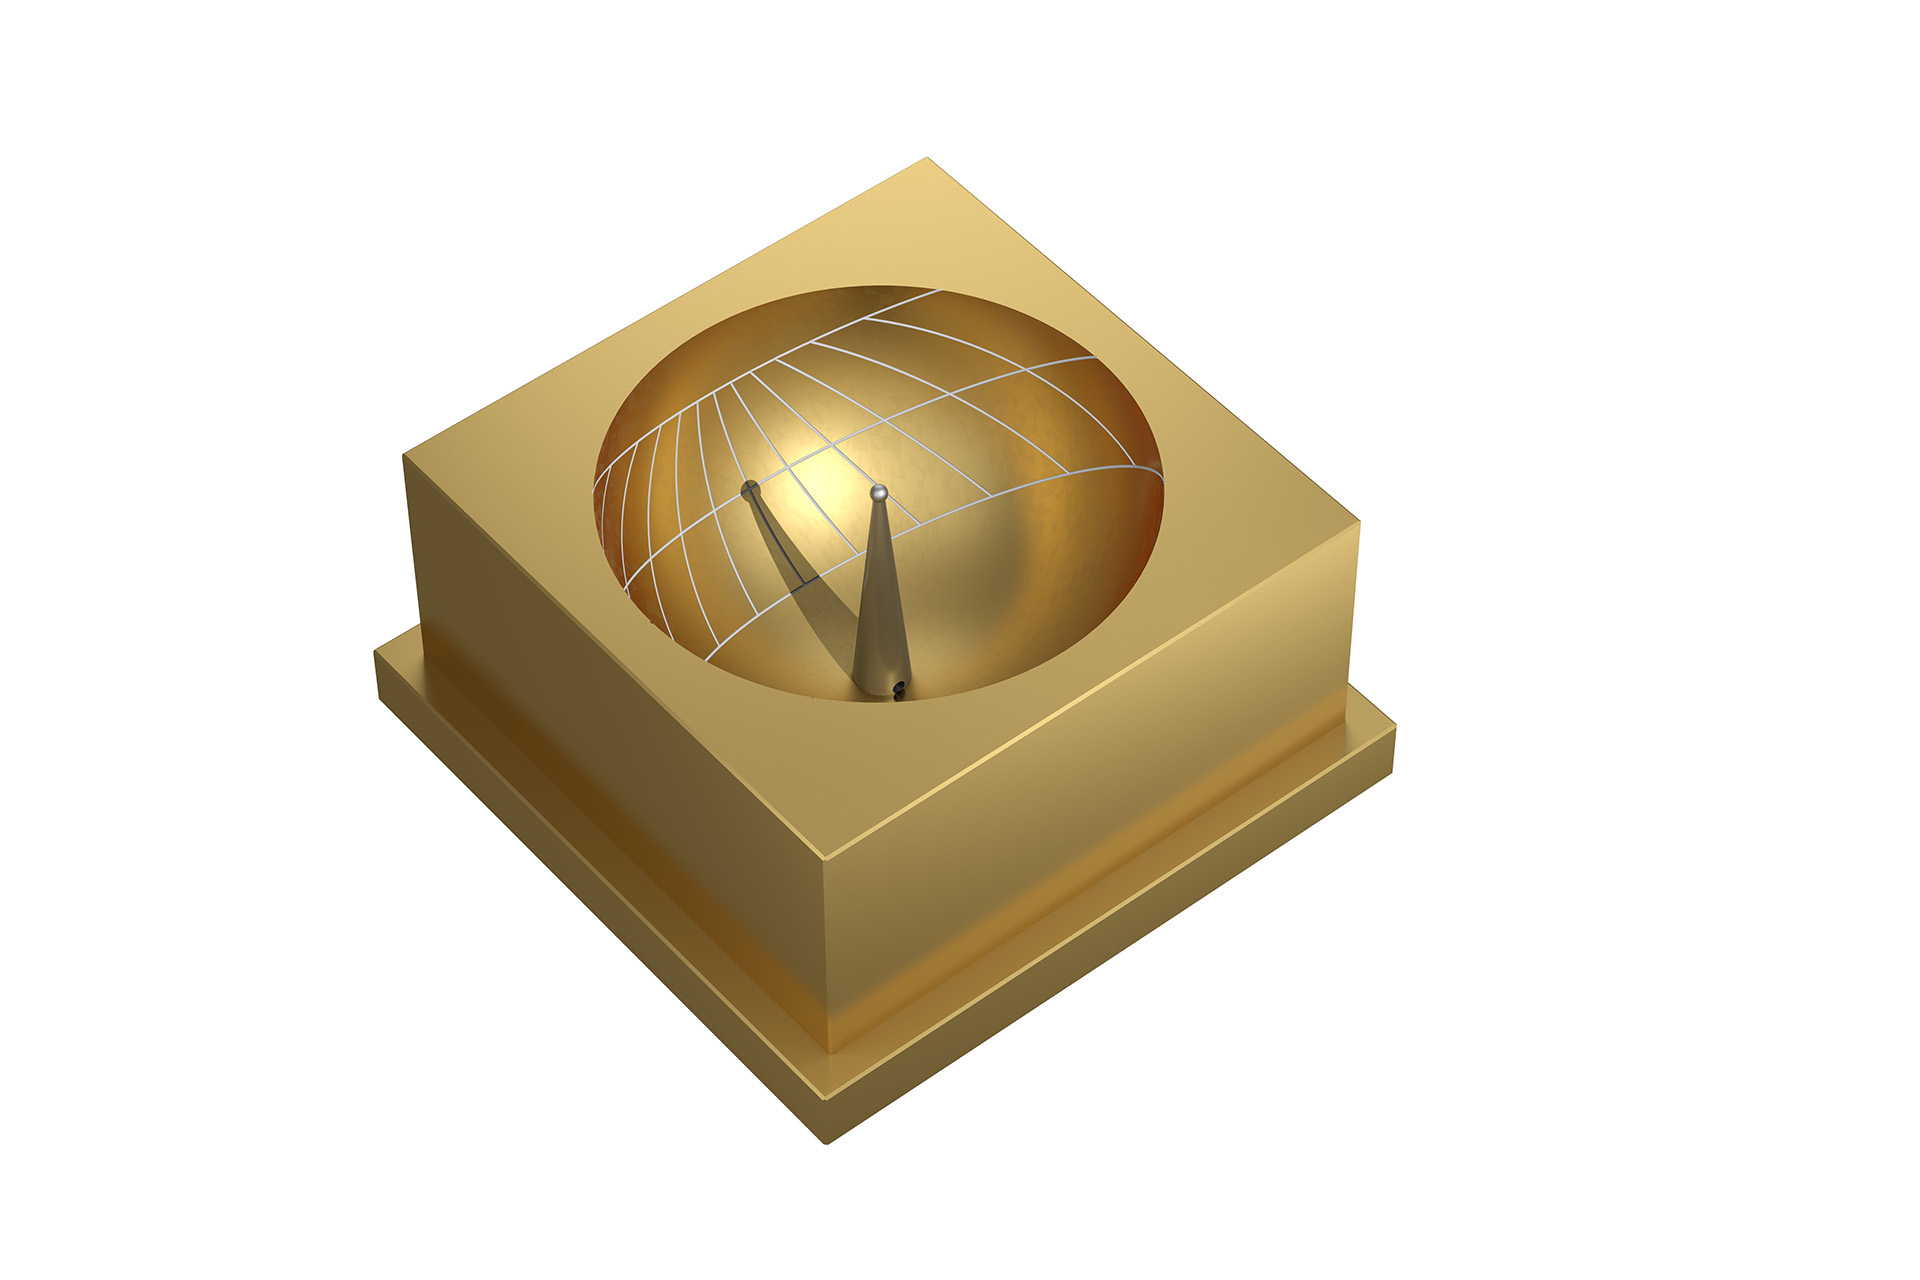 Sundial Skaphe fully gold anodisedshop displays temporal hours